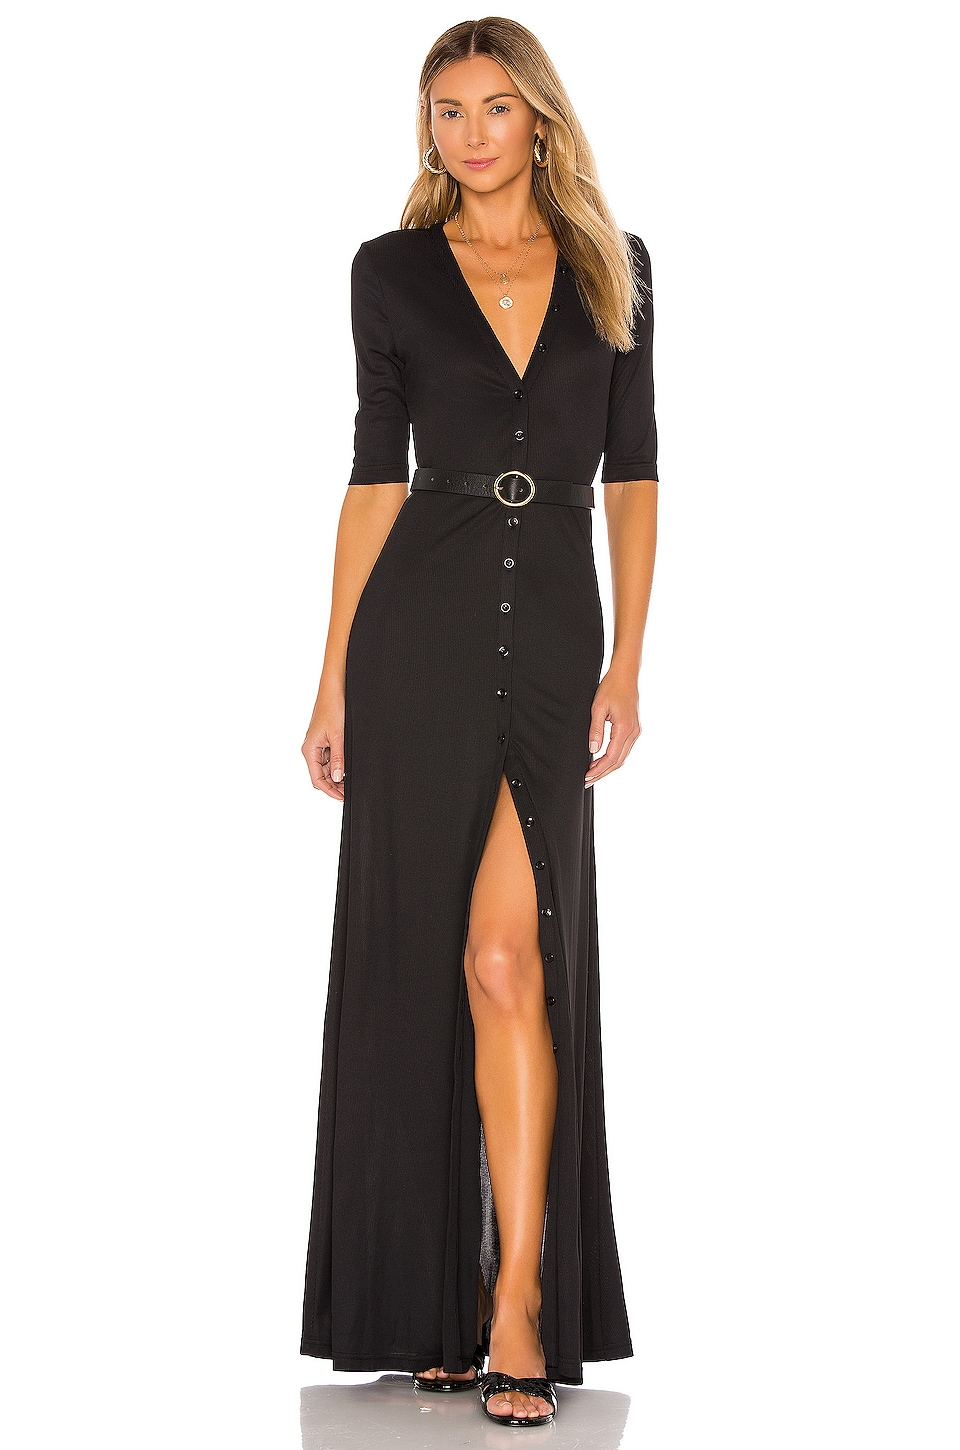 The Esperanza Maxi Dress             L'Academie                                                                                                       CA$ 226.98 13